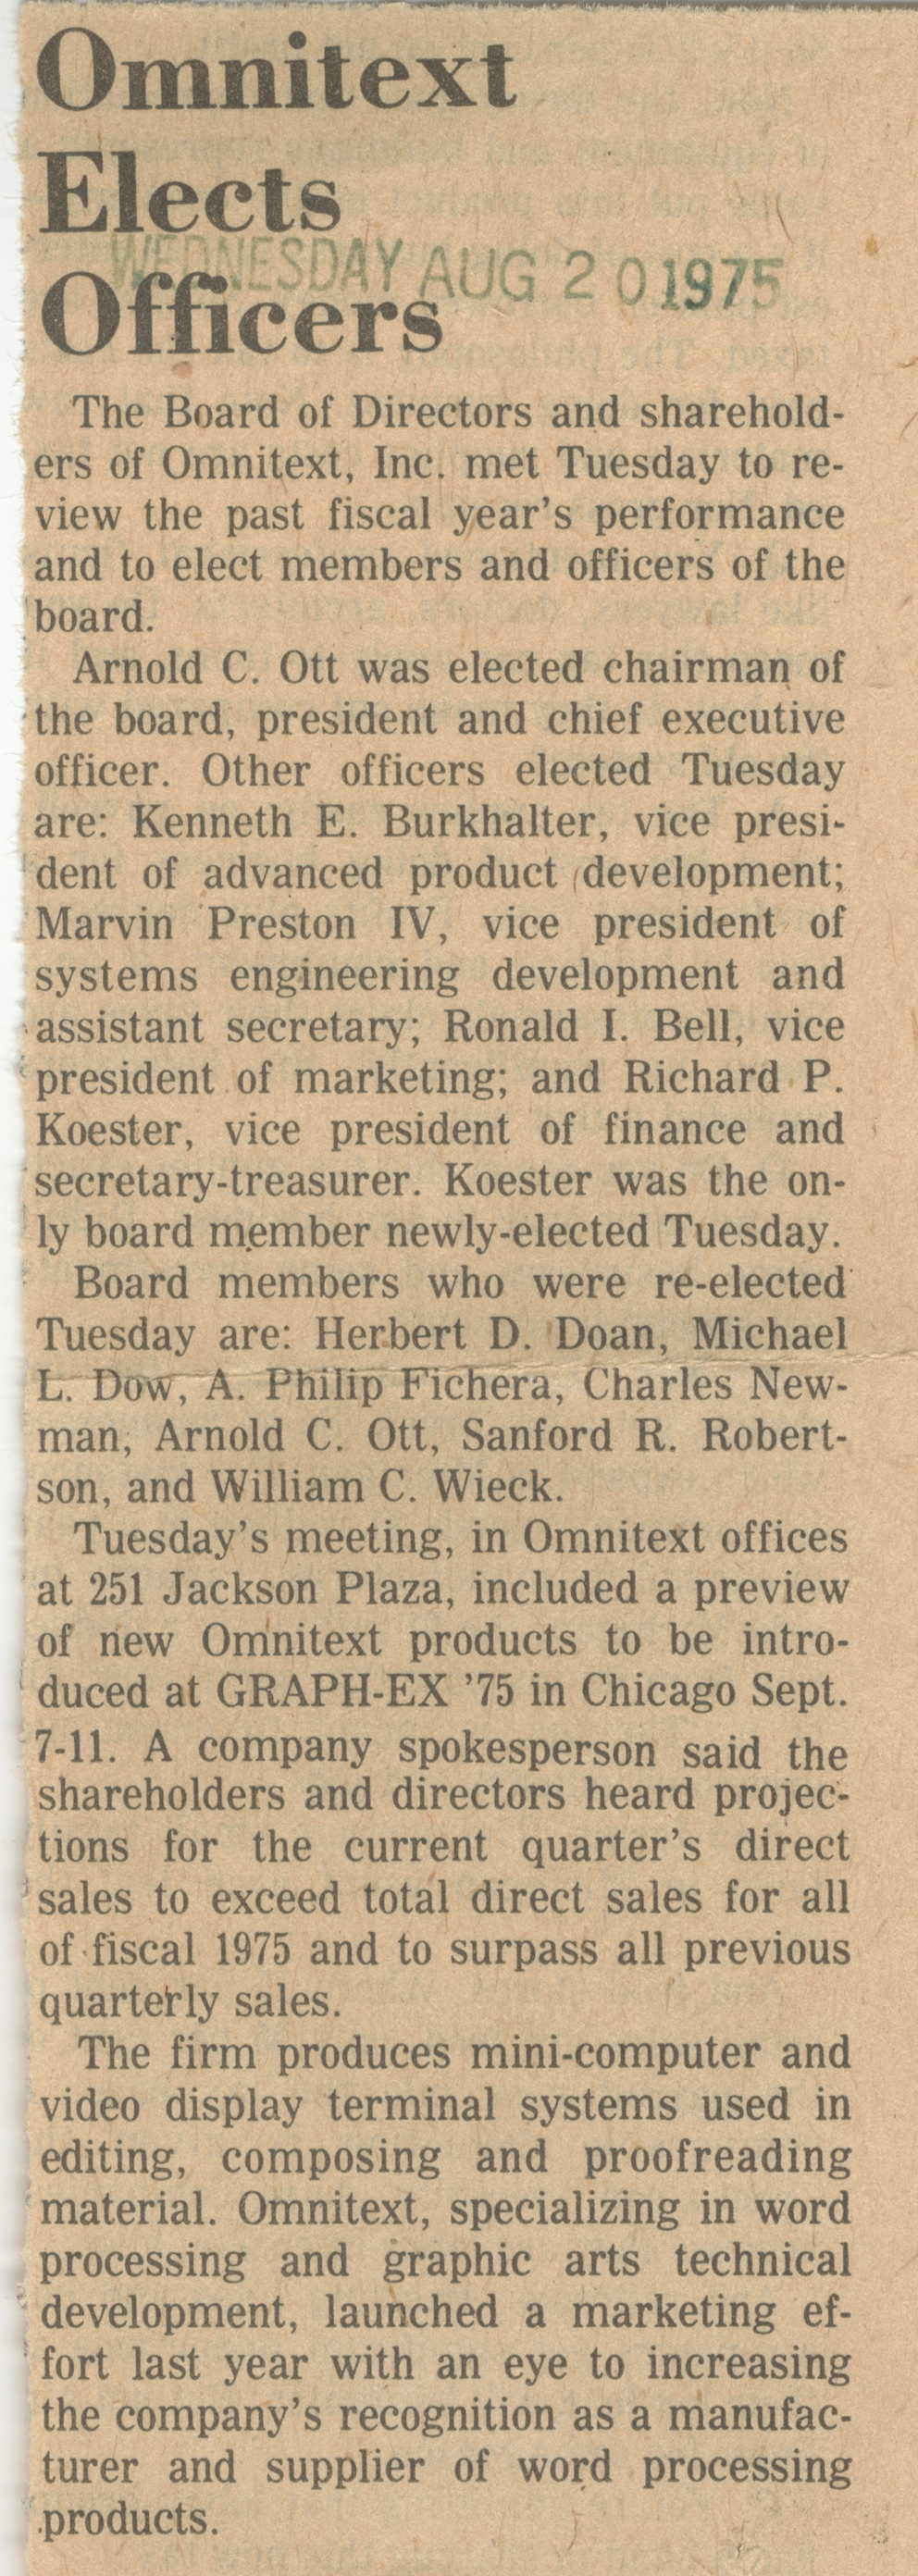 Omnitext Elects Officers image